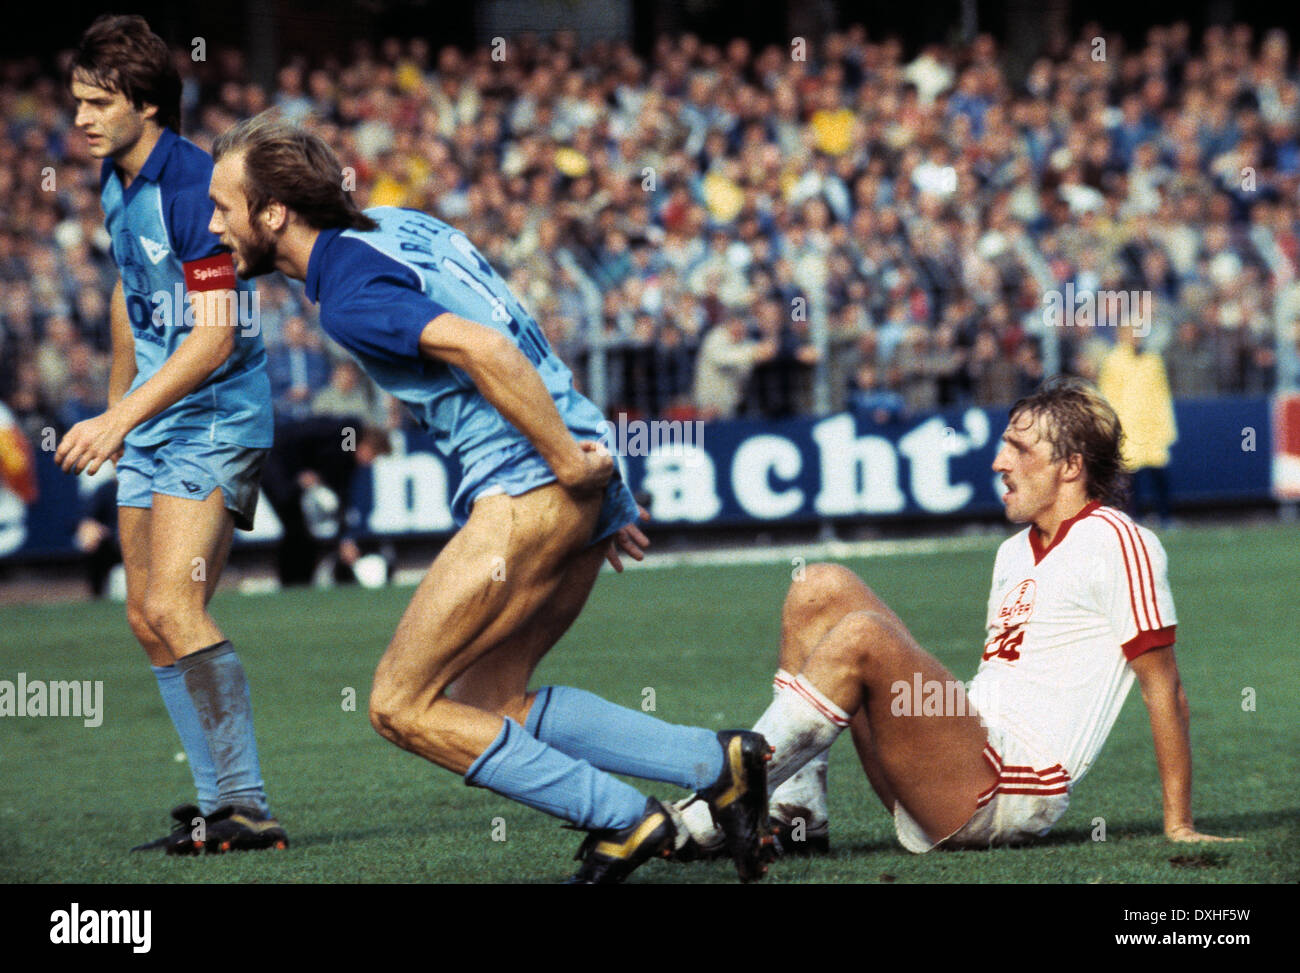 football, Bundesliga, 1983/1984, Grotenburg Stadium, FC Bayer 05 Uerdingen versus Bayer 04 Leverkusen 2:1, scene of the match, f.l.t.r. team leader Matthias Herget (Uerdingen), Werner Buttgereit (Uerdingen), Ulrich Bittorf (Leverkusen) - Stock Image